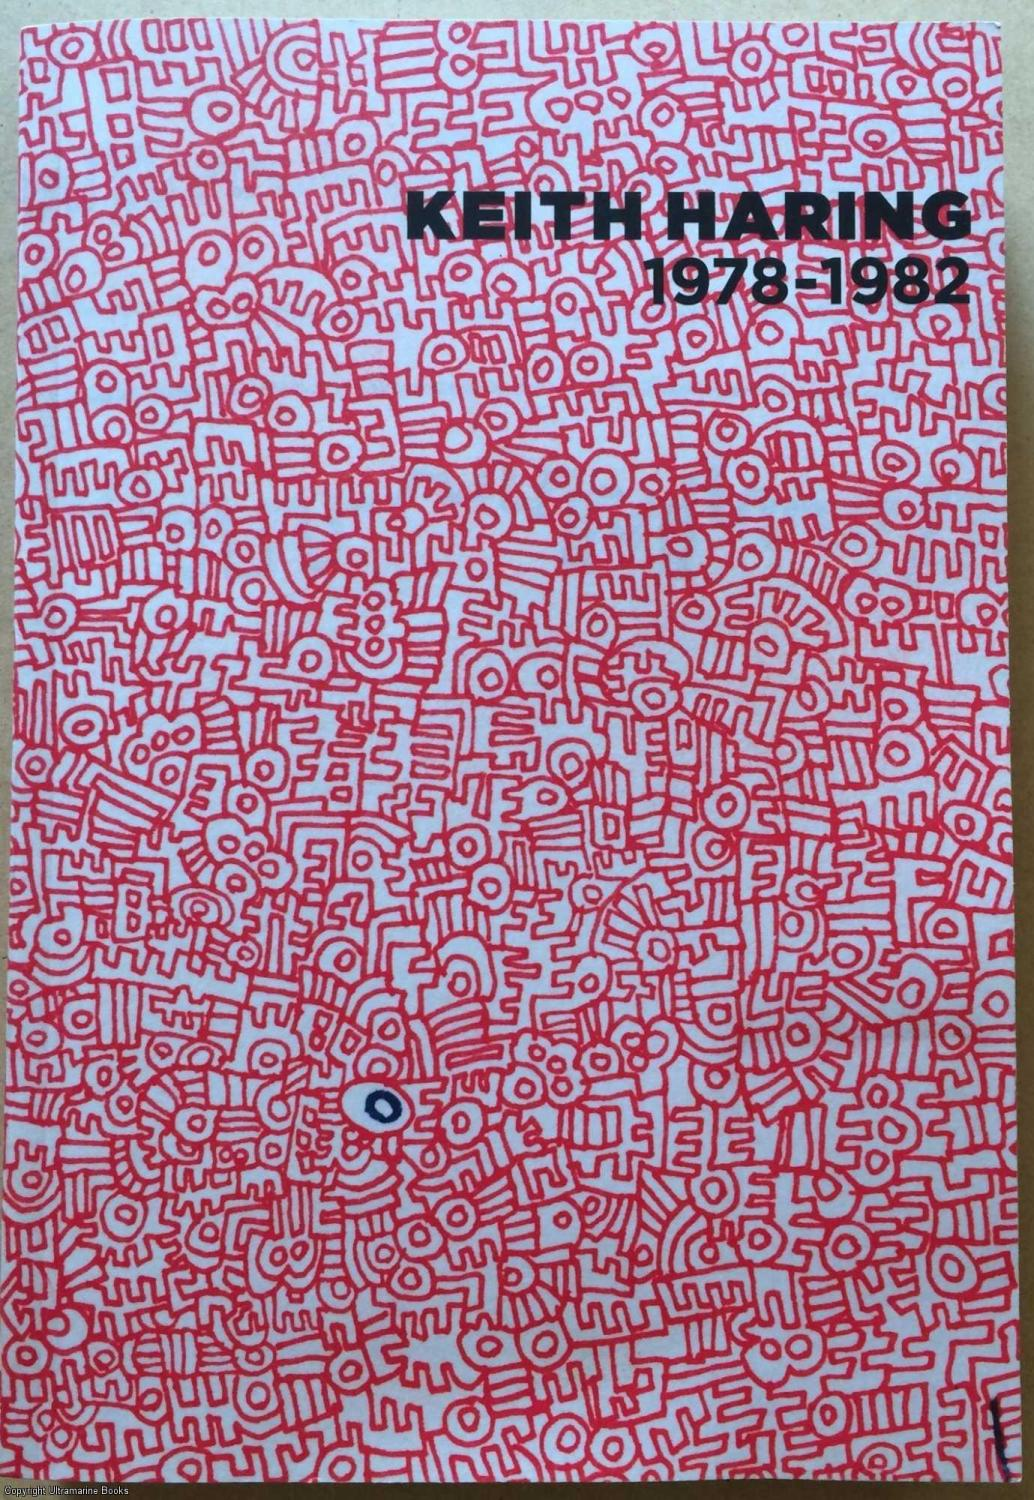 Keith Haring, 1978-1982 - Platow, Raphaela, (curated by)